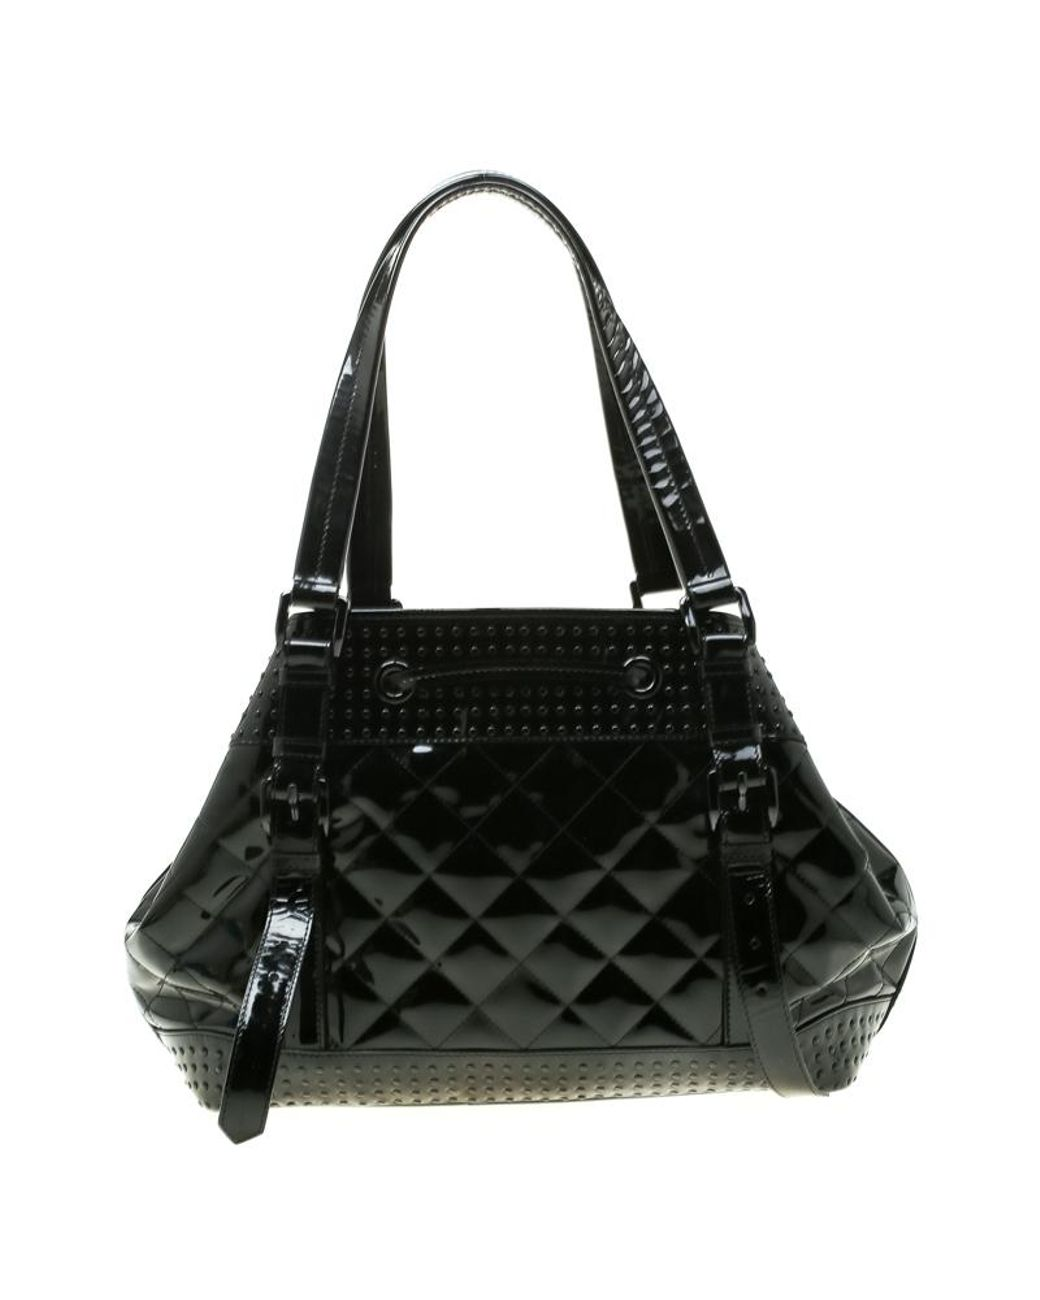 b850f4680e Burberry Black Quilted Patent Leather Studded Lowry Tote in Black - Lyst